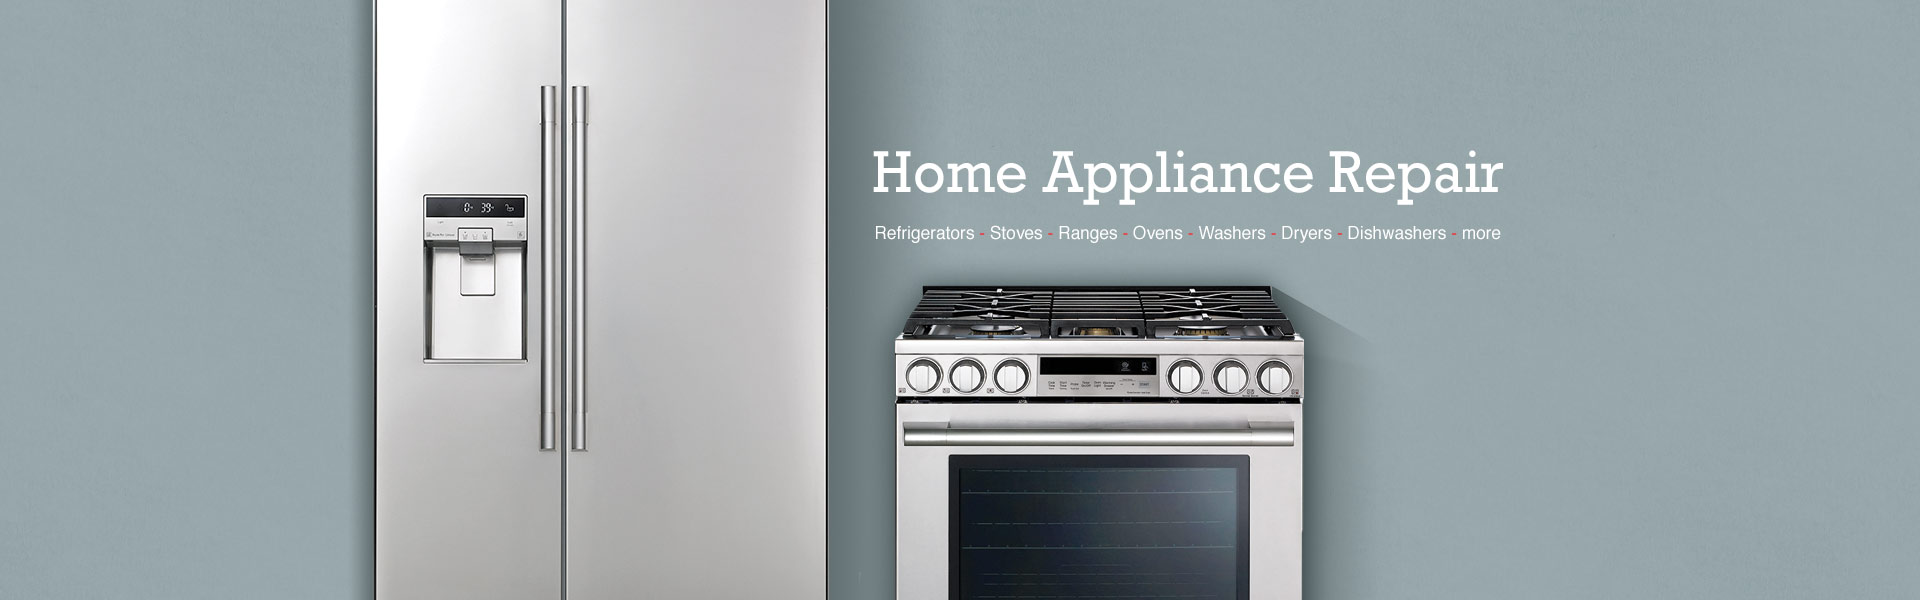 Appliance Repair Little Rock AR